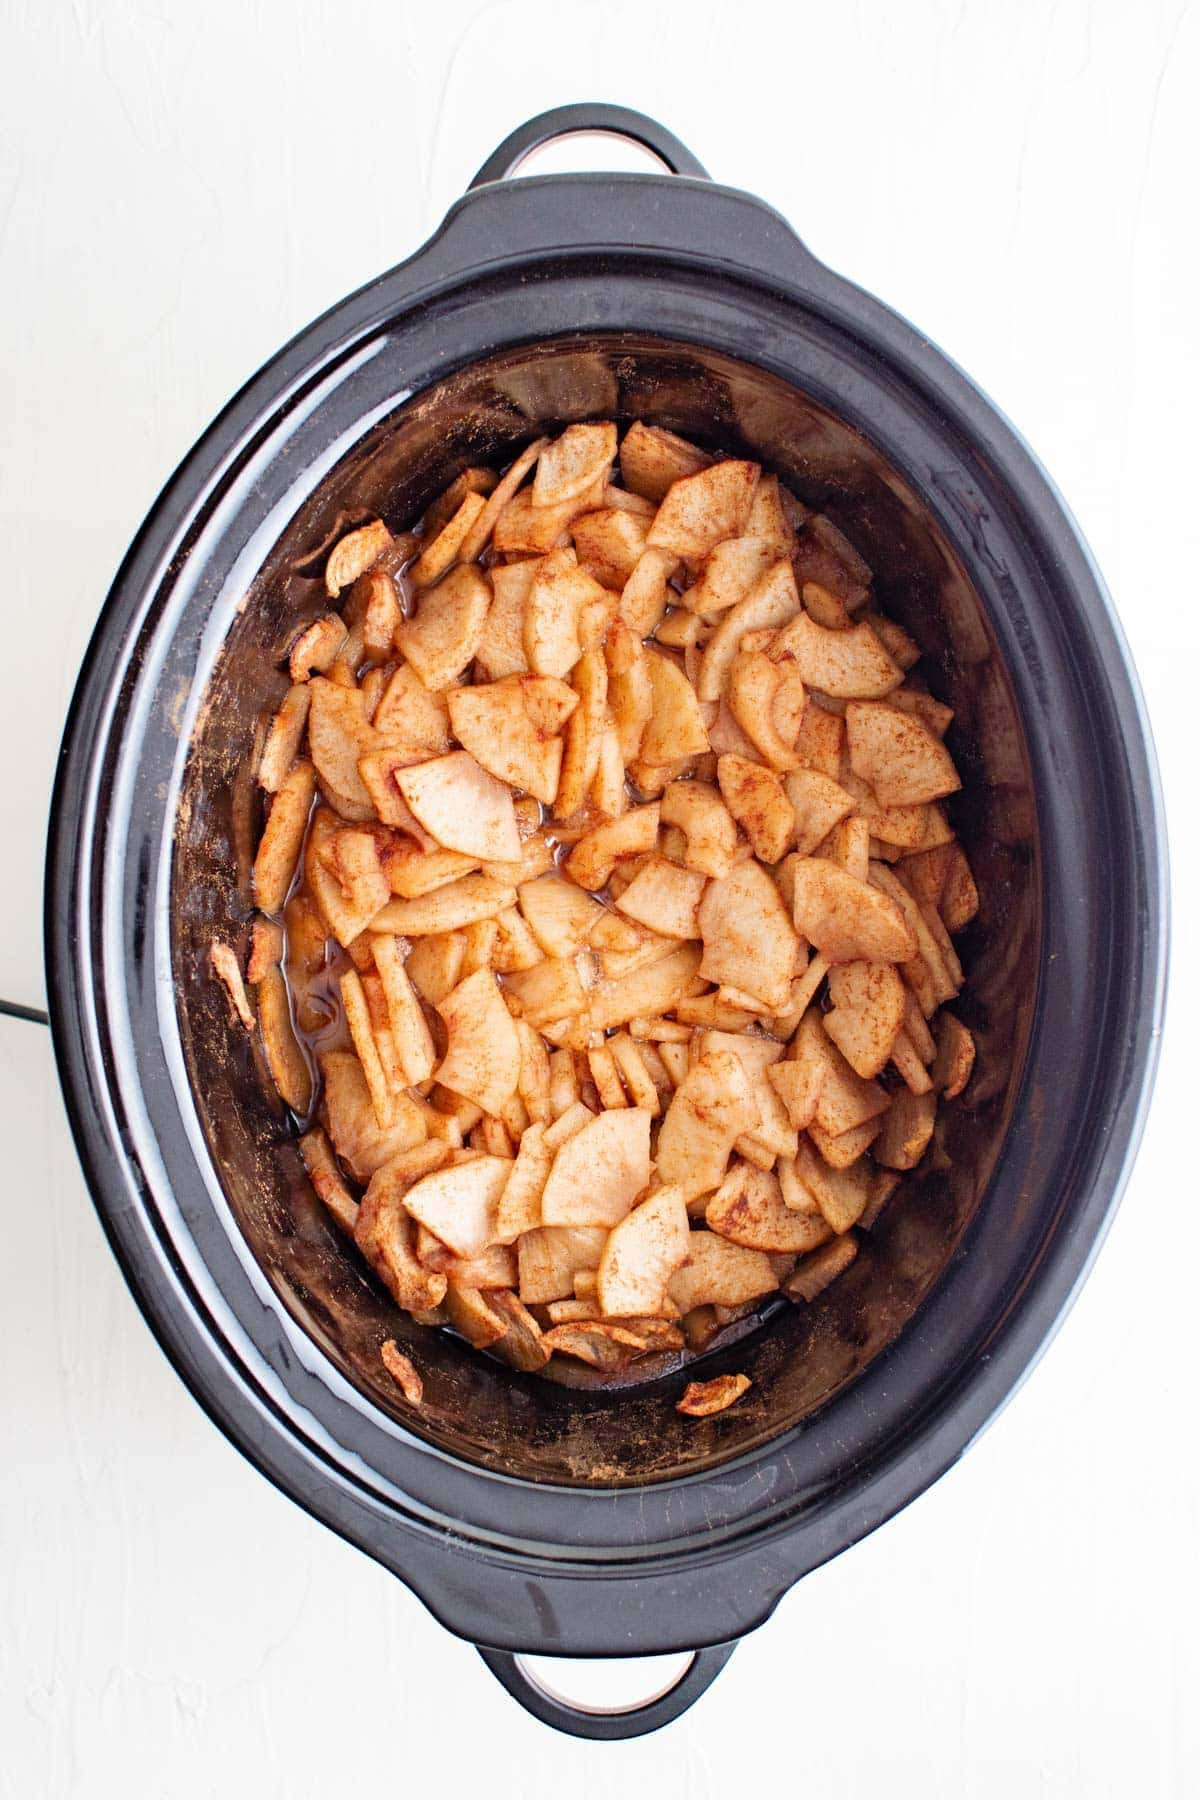 apples coated with cinnamon and sugar in a slow cooker